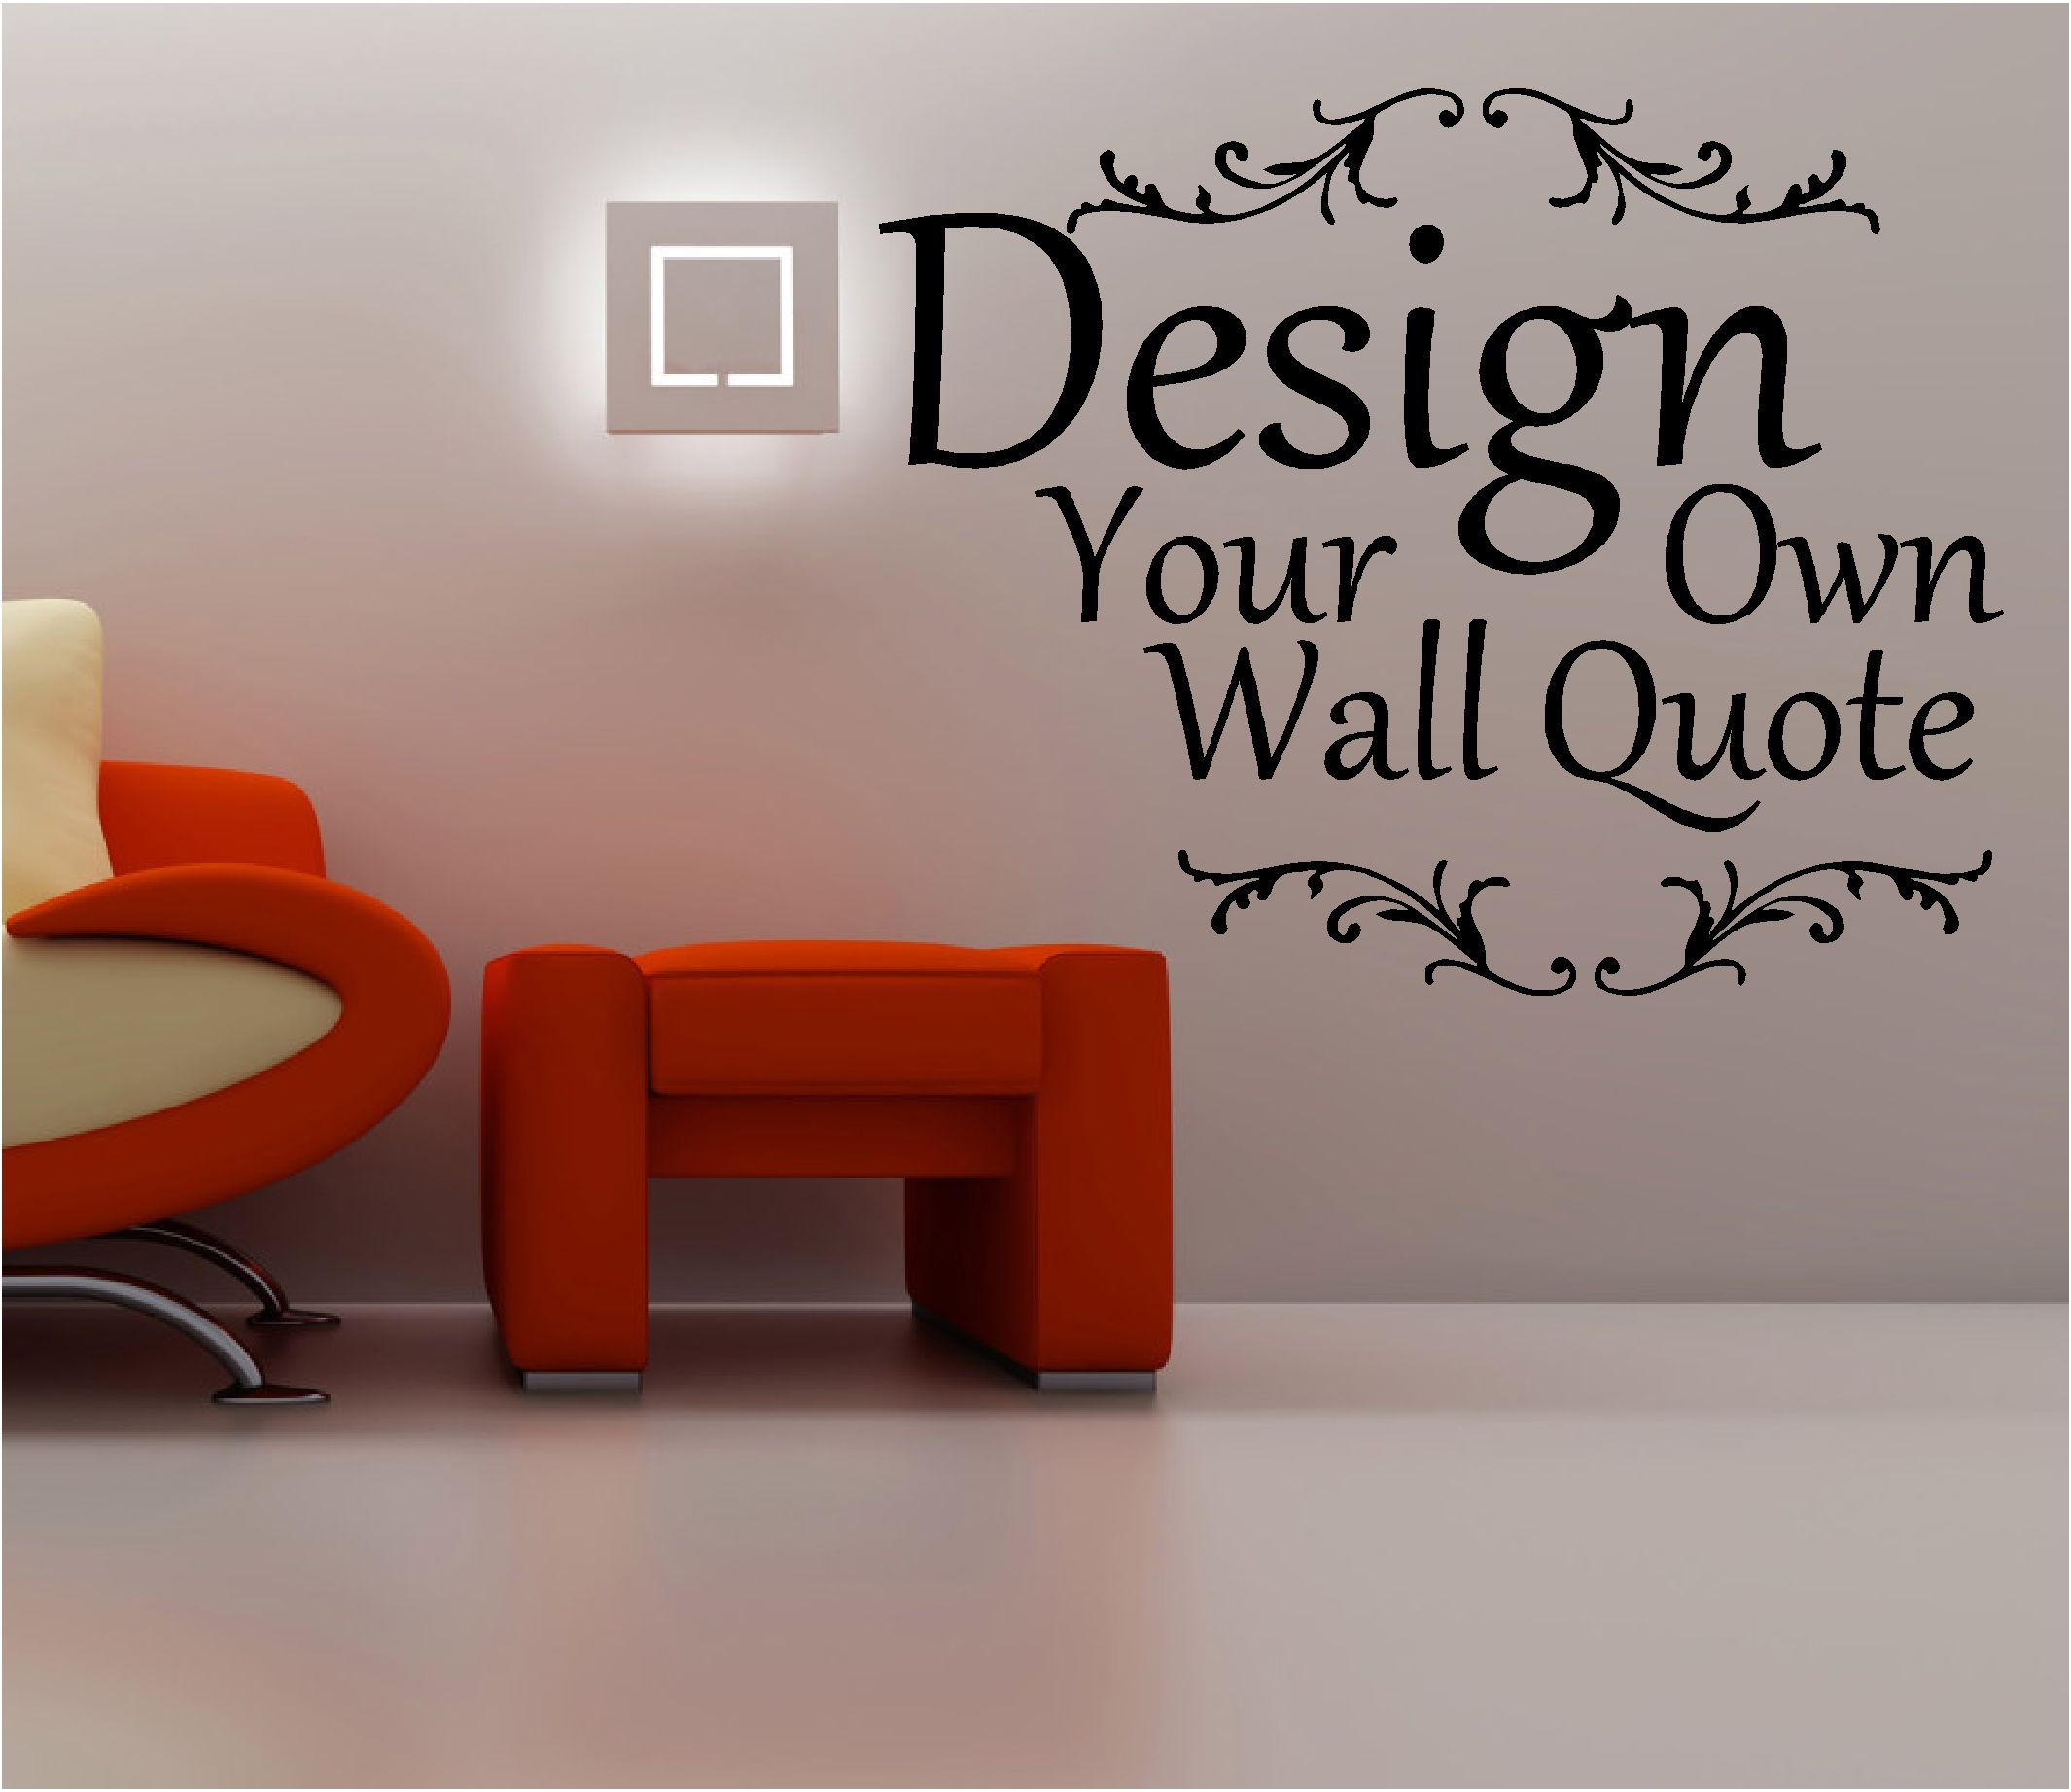 details about design your own wall quote art up to words